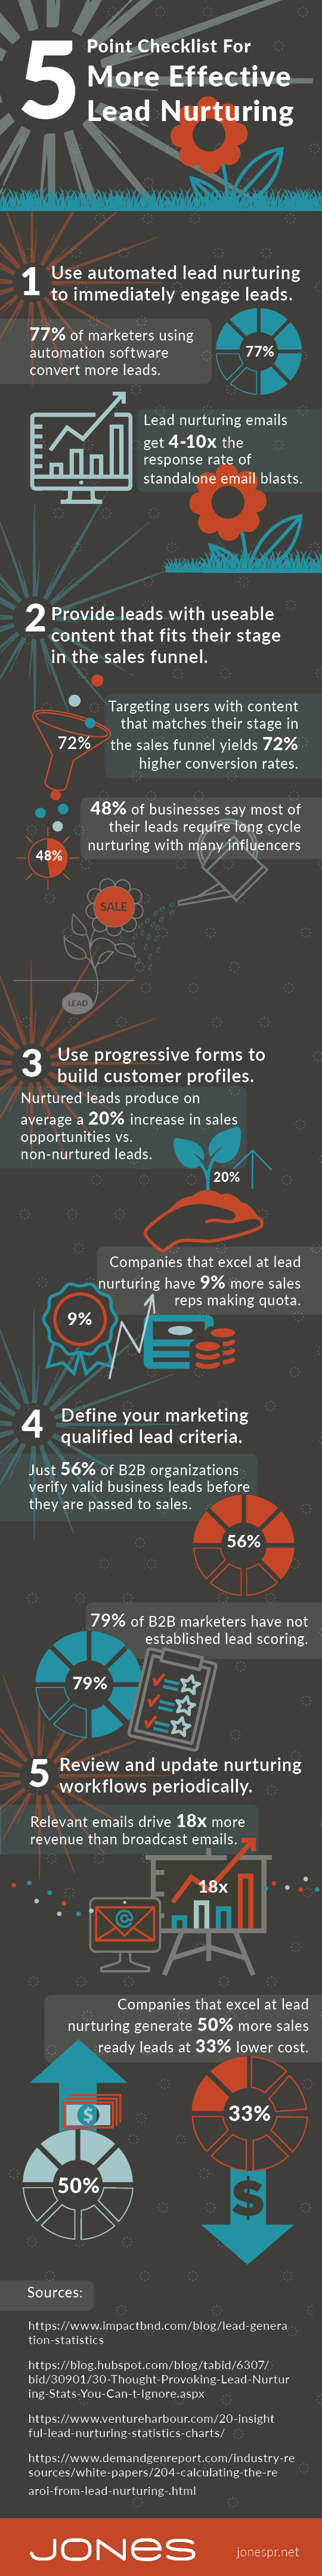 jones-infographic-lead-nurturing-checklist